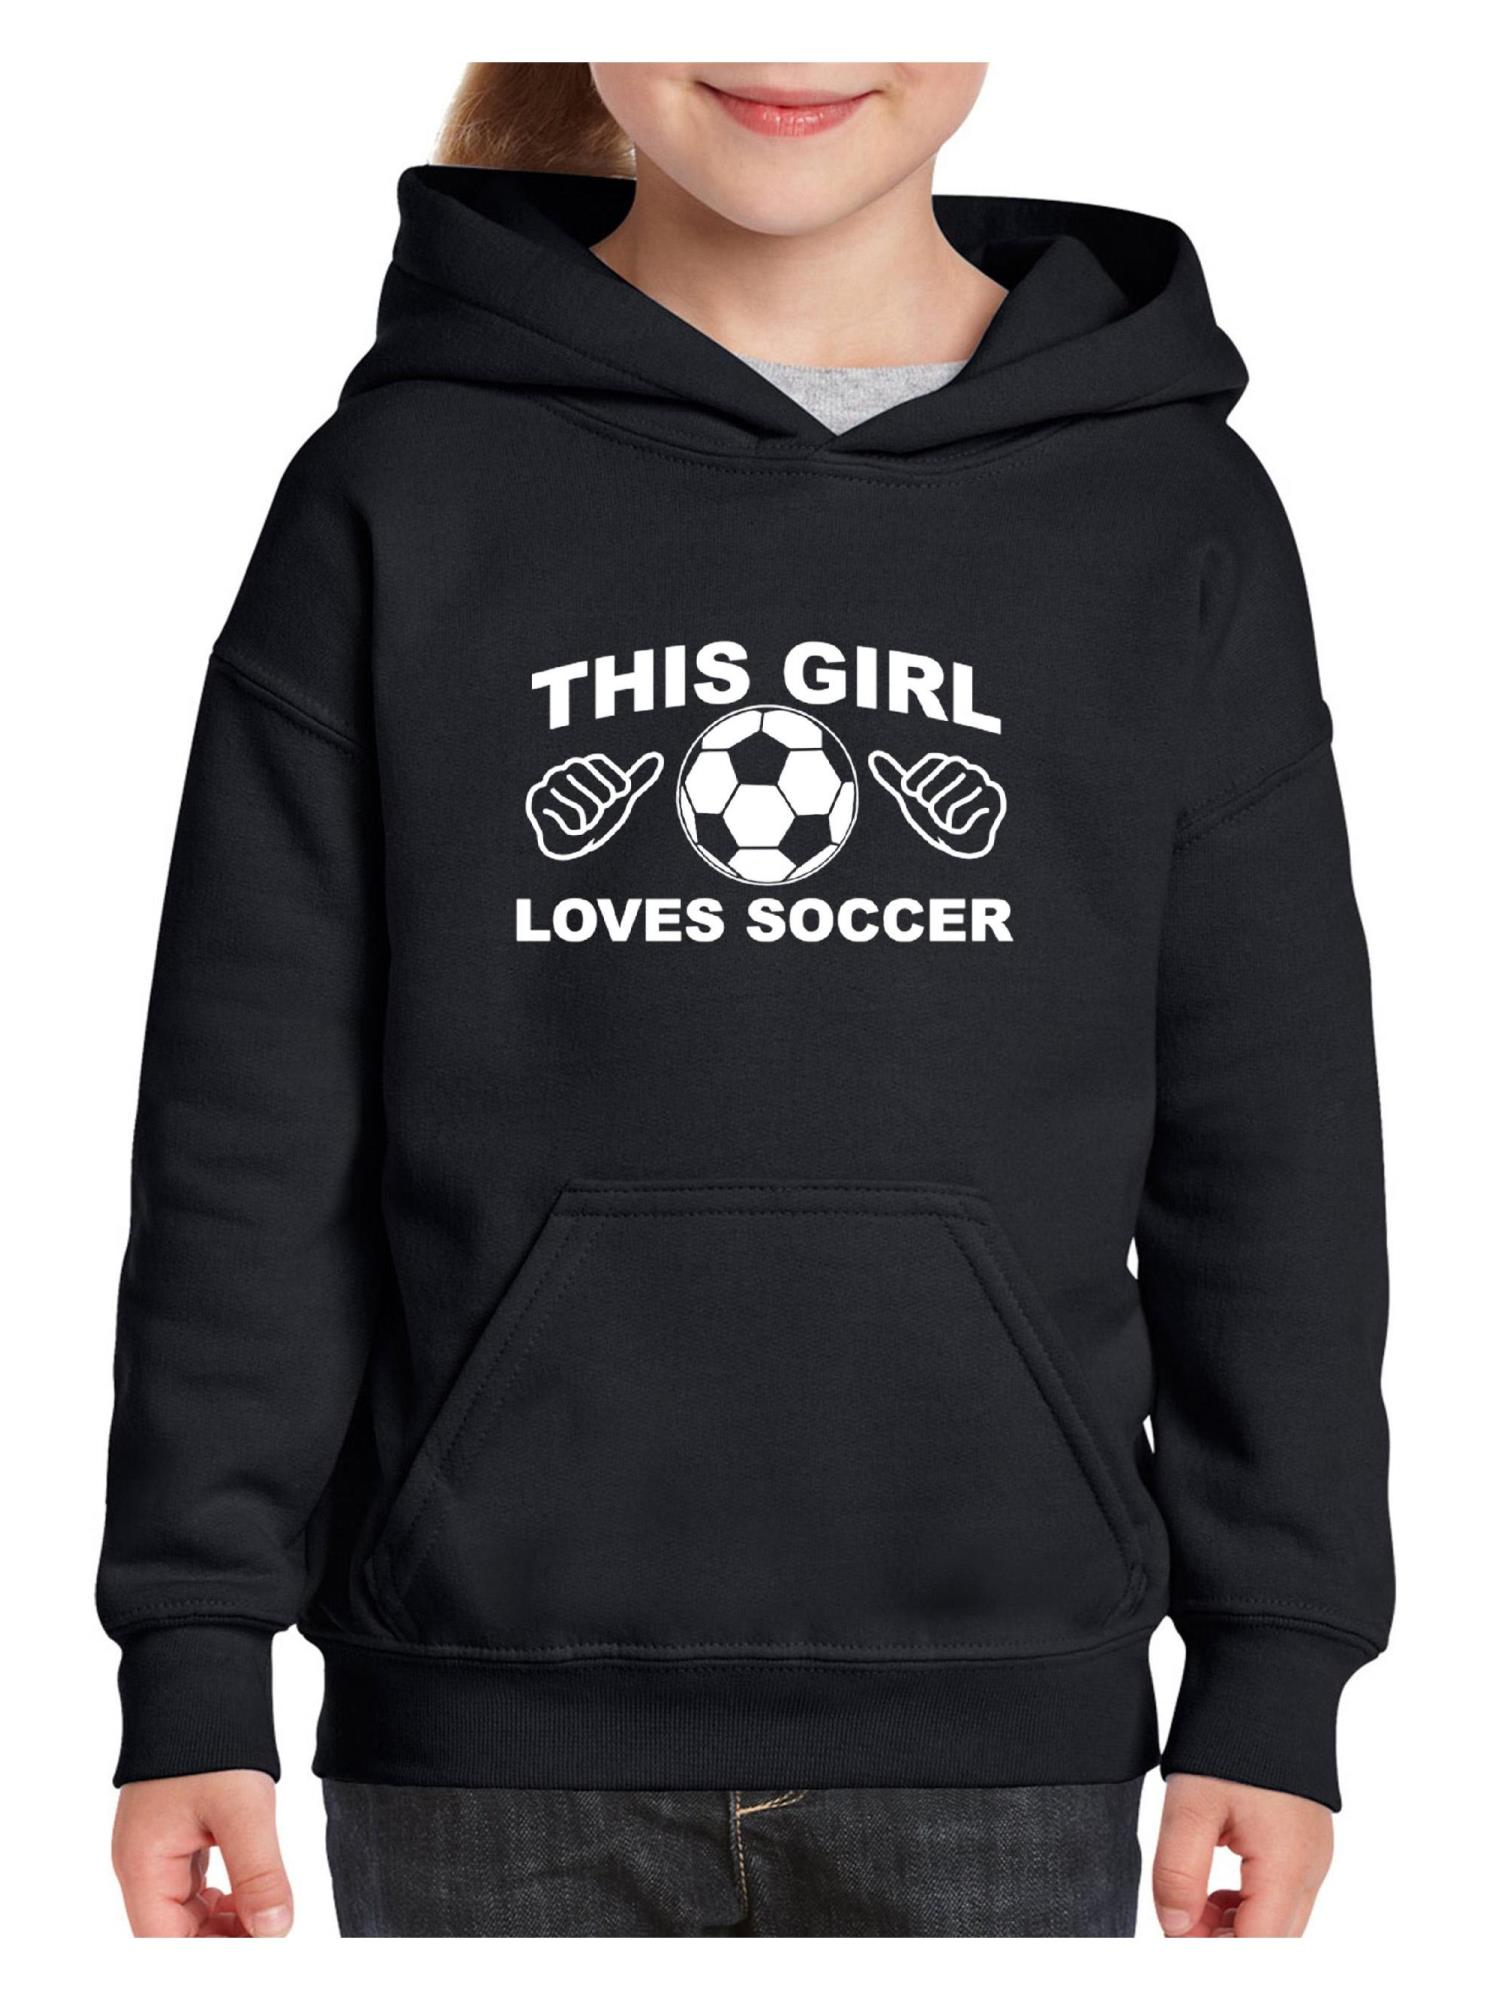 Soccer This Girl Loves Soccer Unisex Hoodie For Girls and Boys Youth Sweatshirt